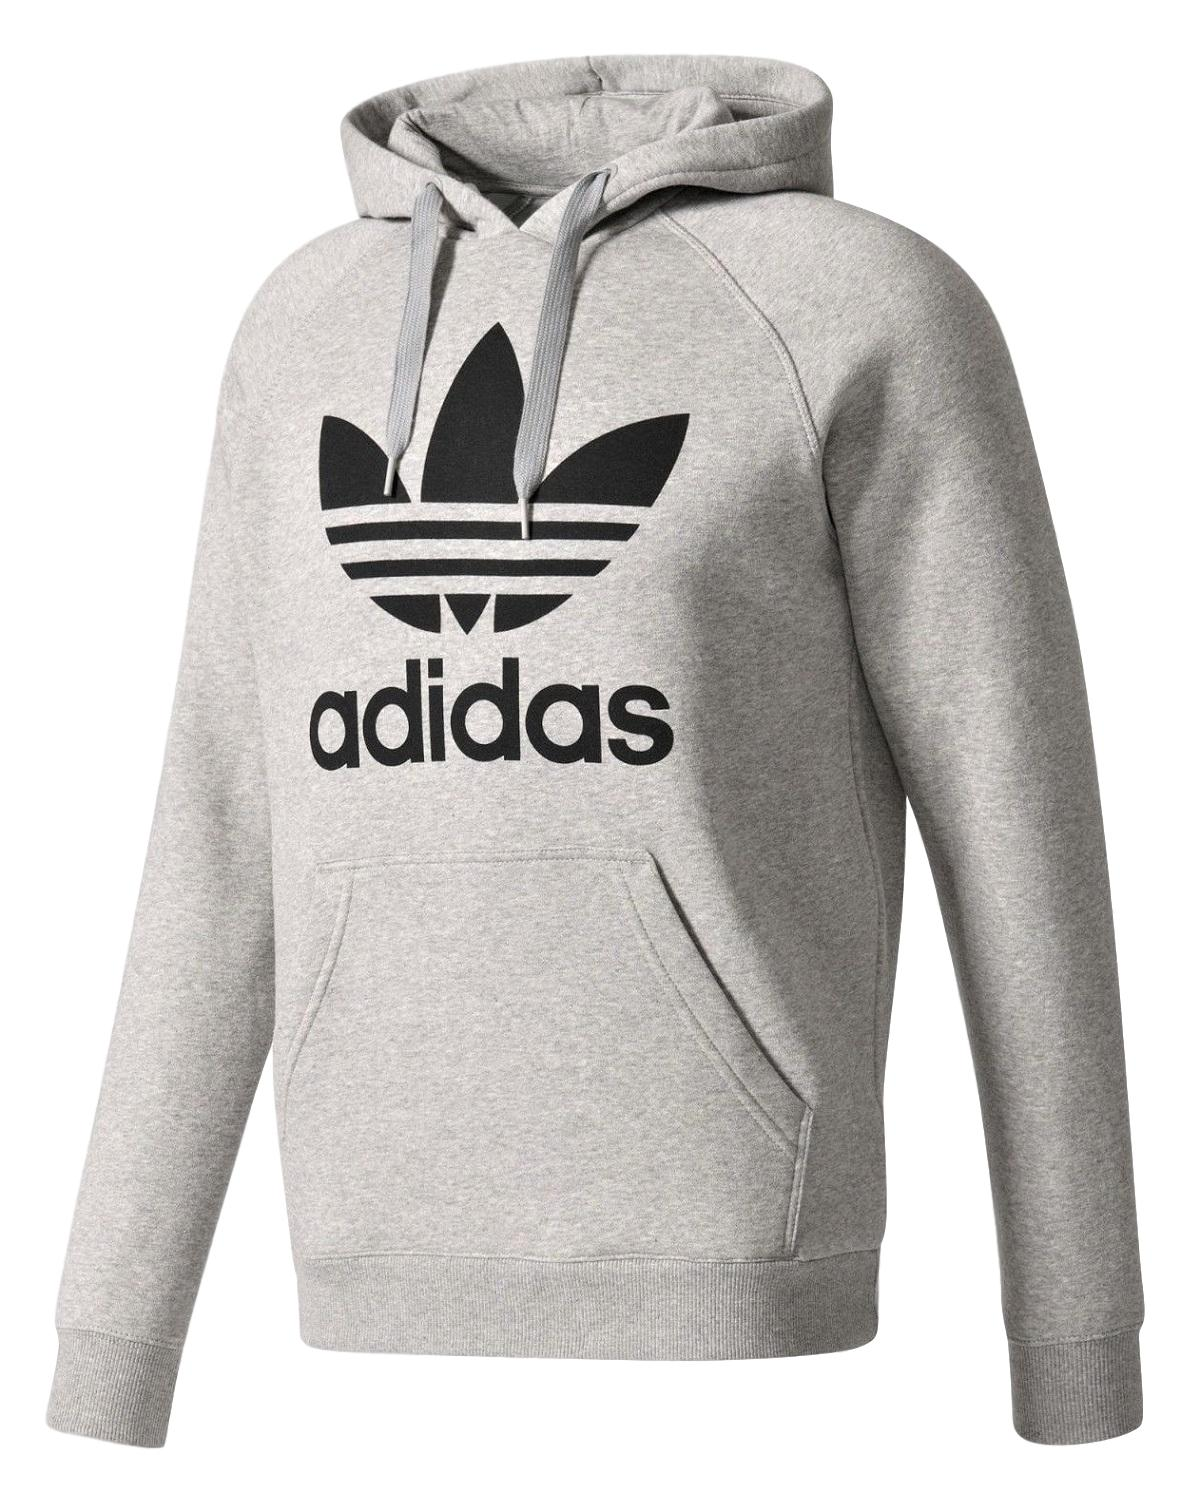 New Mens Adidas Original Mens Trefoil Fleece Hoodie Hooded Sweatshirt Pullover Jumper Gray